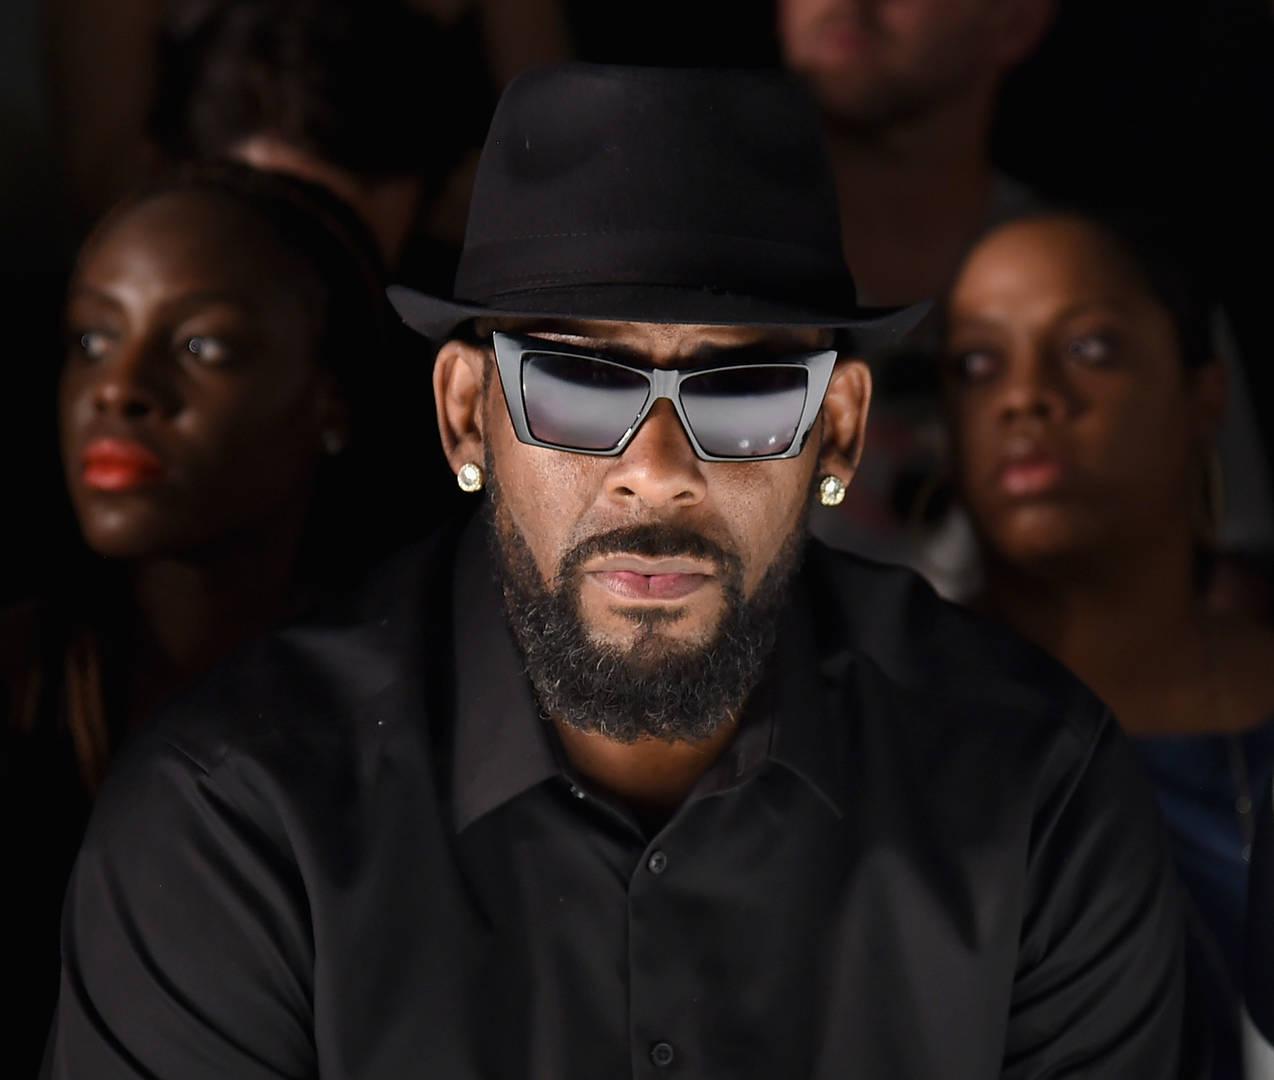 R Kelly charged with 10 counts of sex abuse